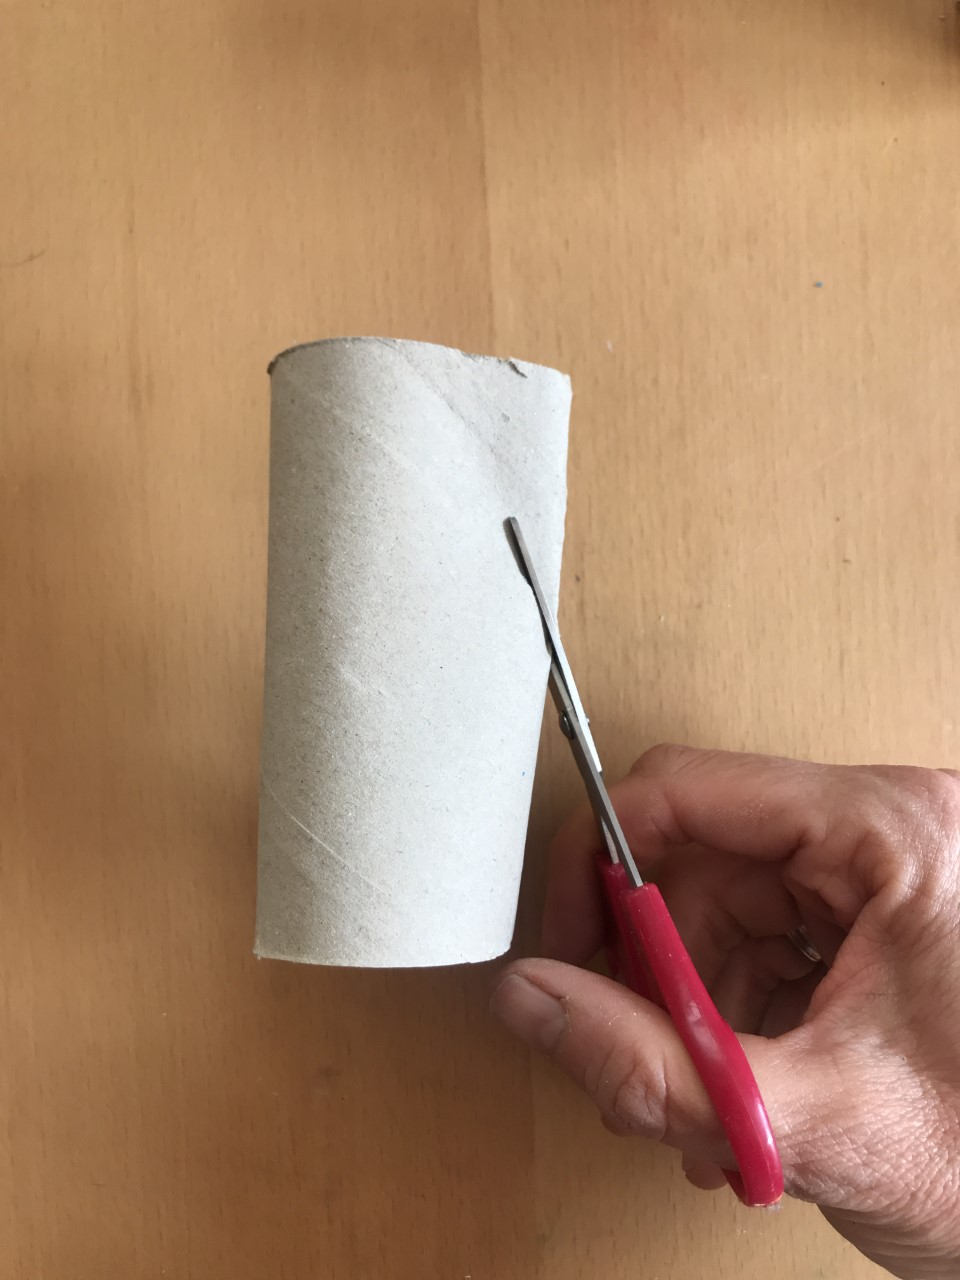 A person cuts into a loo roll tube with a pair of red scissors